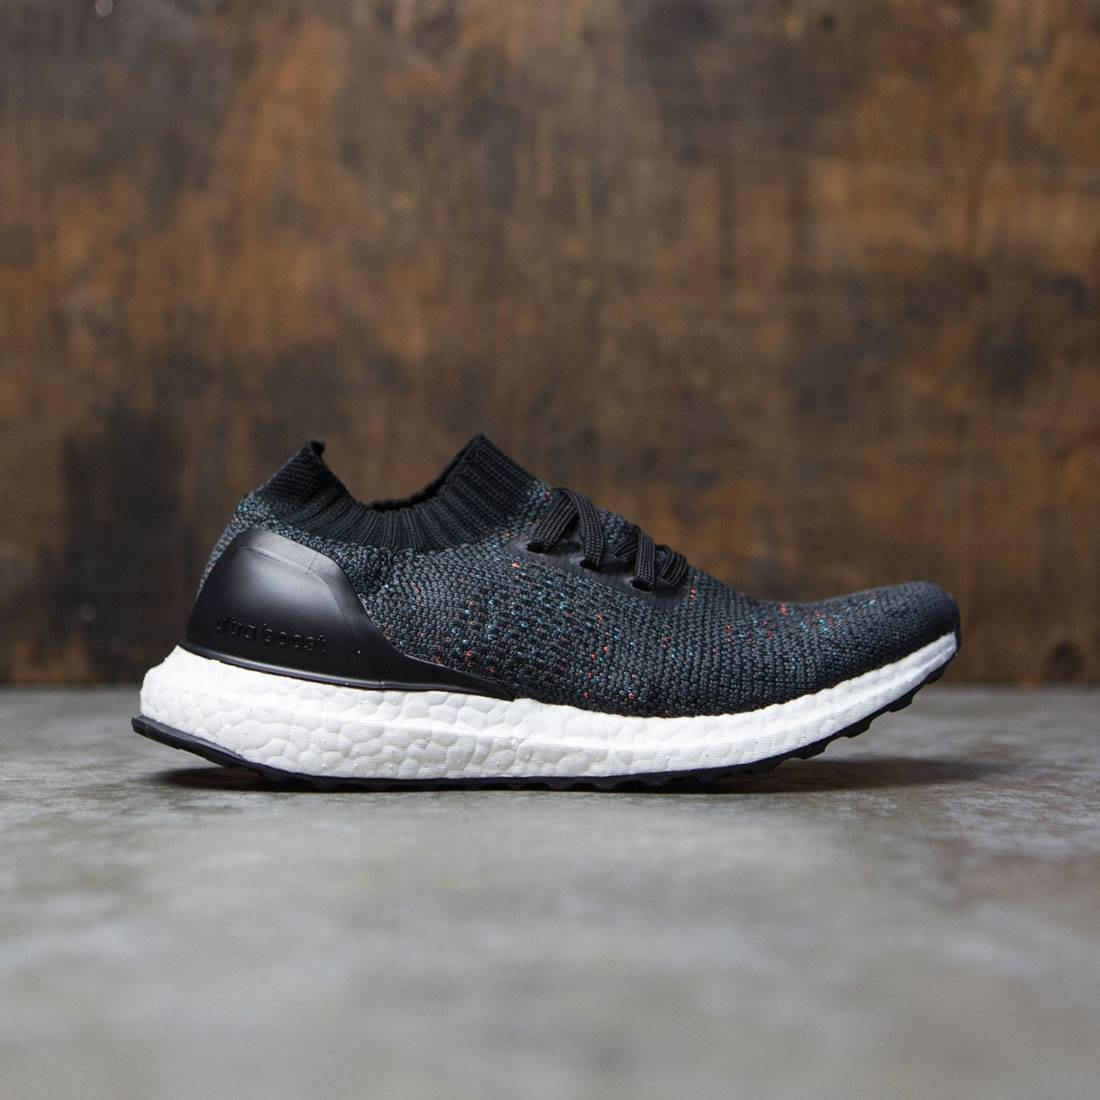 new zealand adidas ultra boost uncaged all black 87845 c2573 4879fa5e6